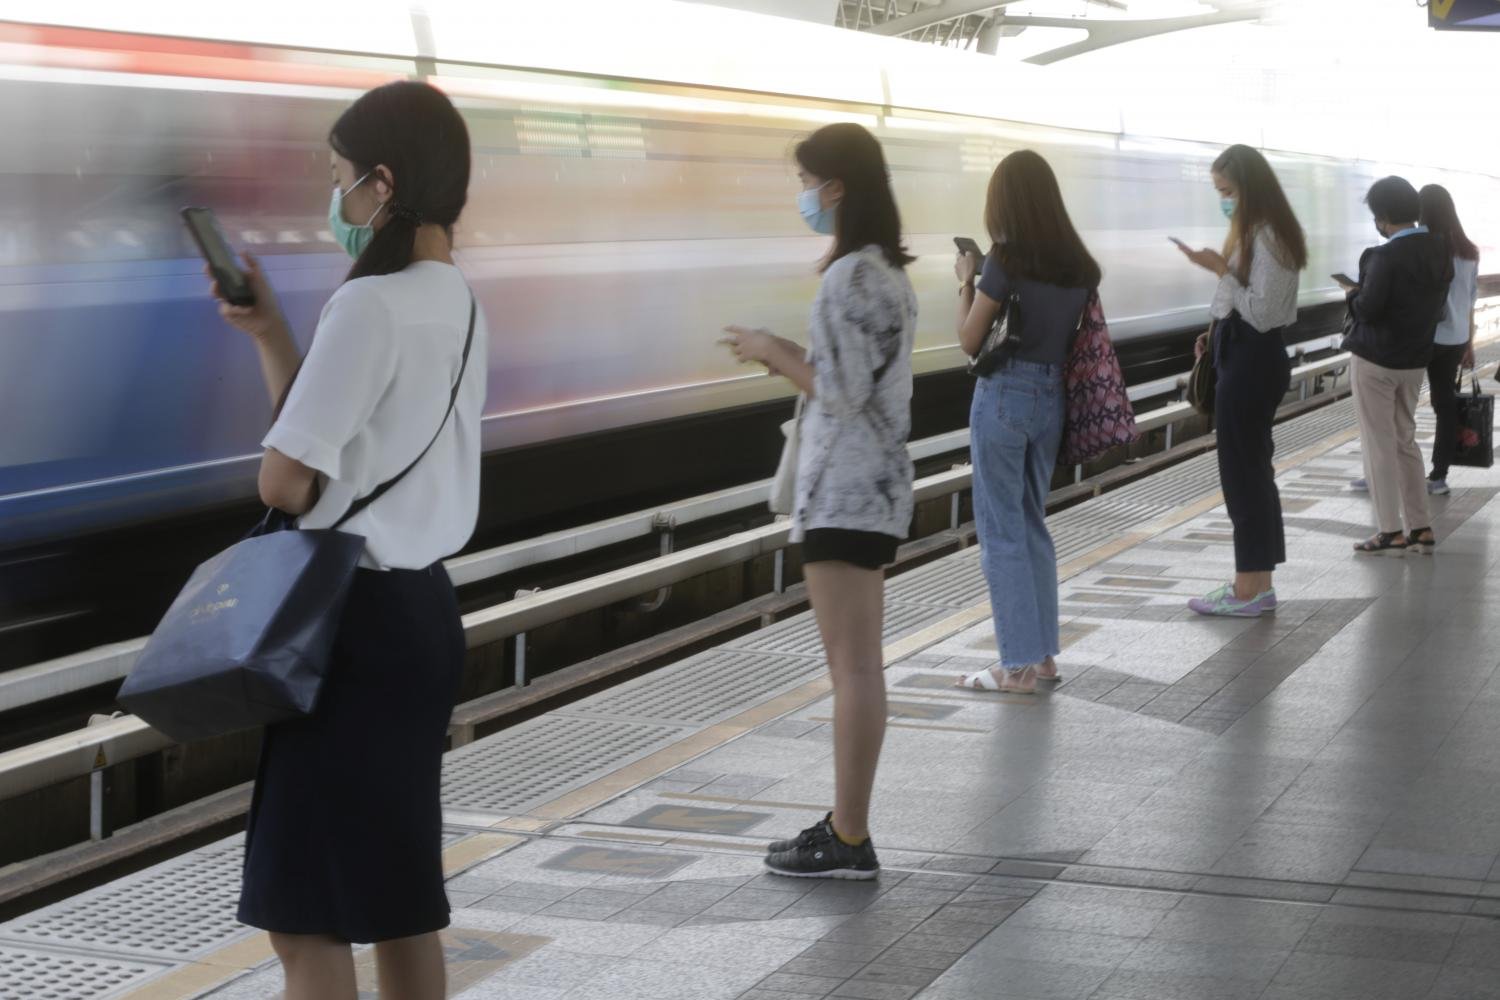 People are glued to their phones while waiting for the skytrain at Victory Monument station in Bangkok. (Photo by Pornprom Satrabhaya)